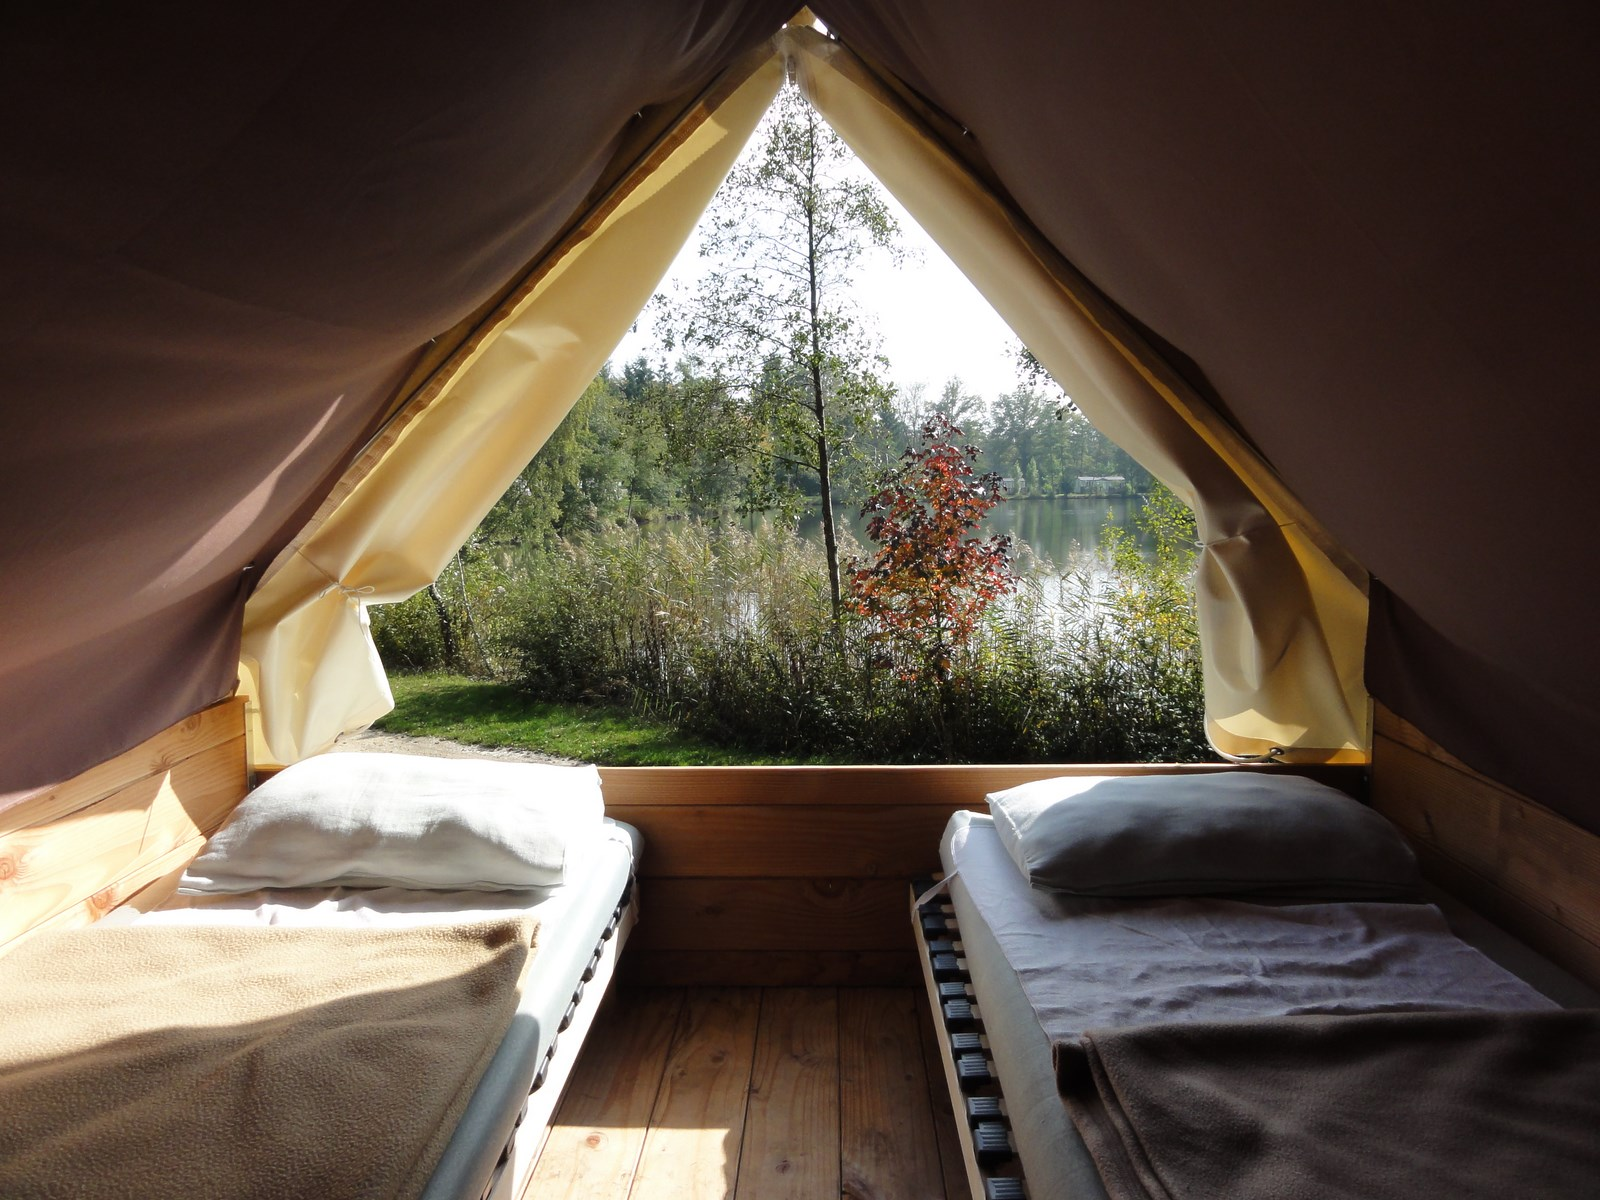 View from the bedroom of the Bivouac tent